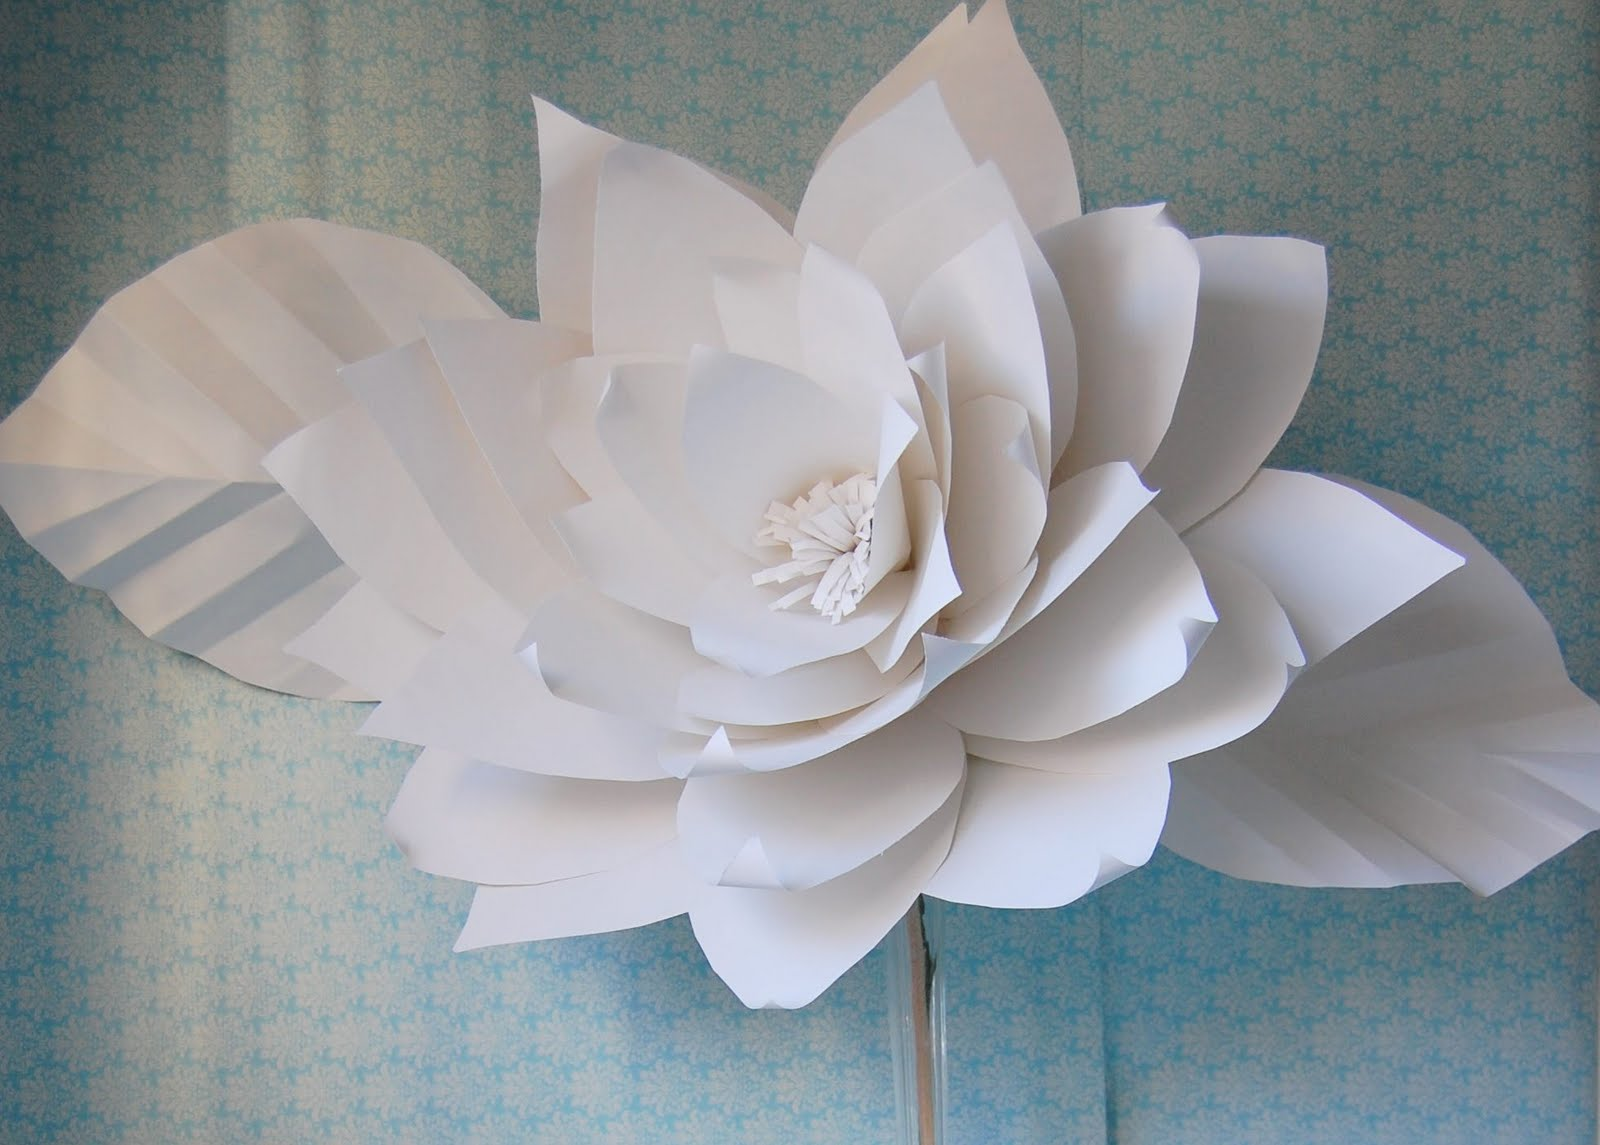 Chanel show inspired huge large white paper flowers backdrop chanel huge paper fower inspired mightylinksfo Images